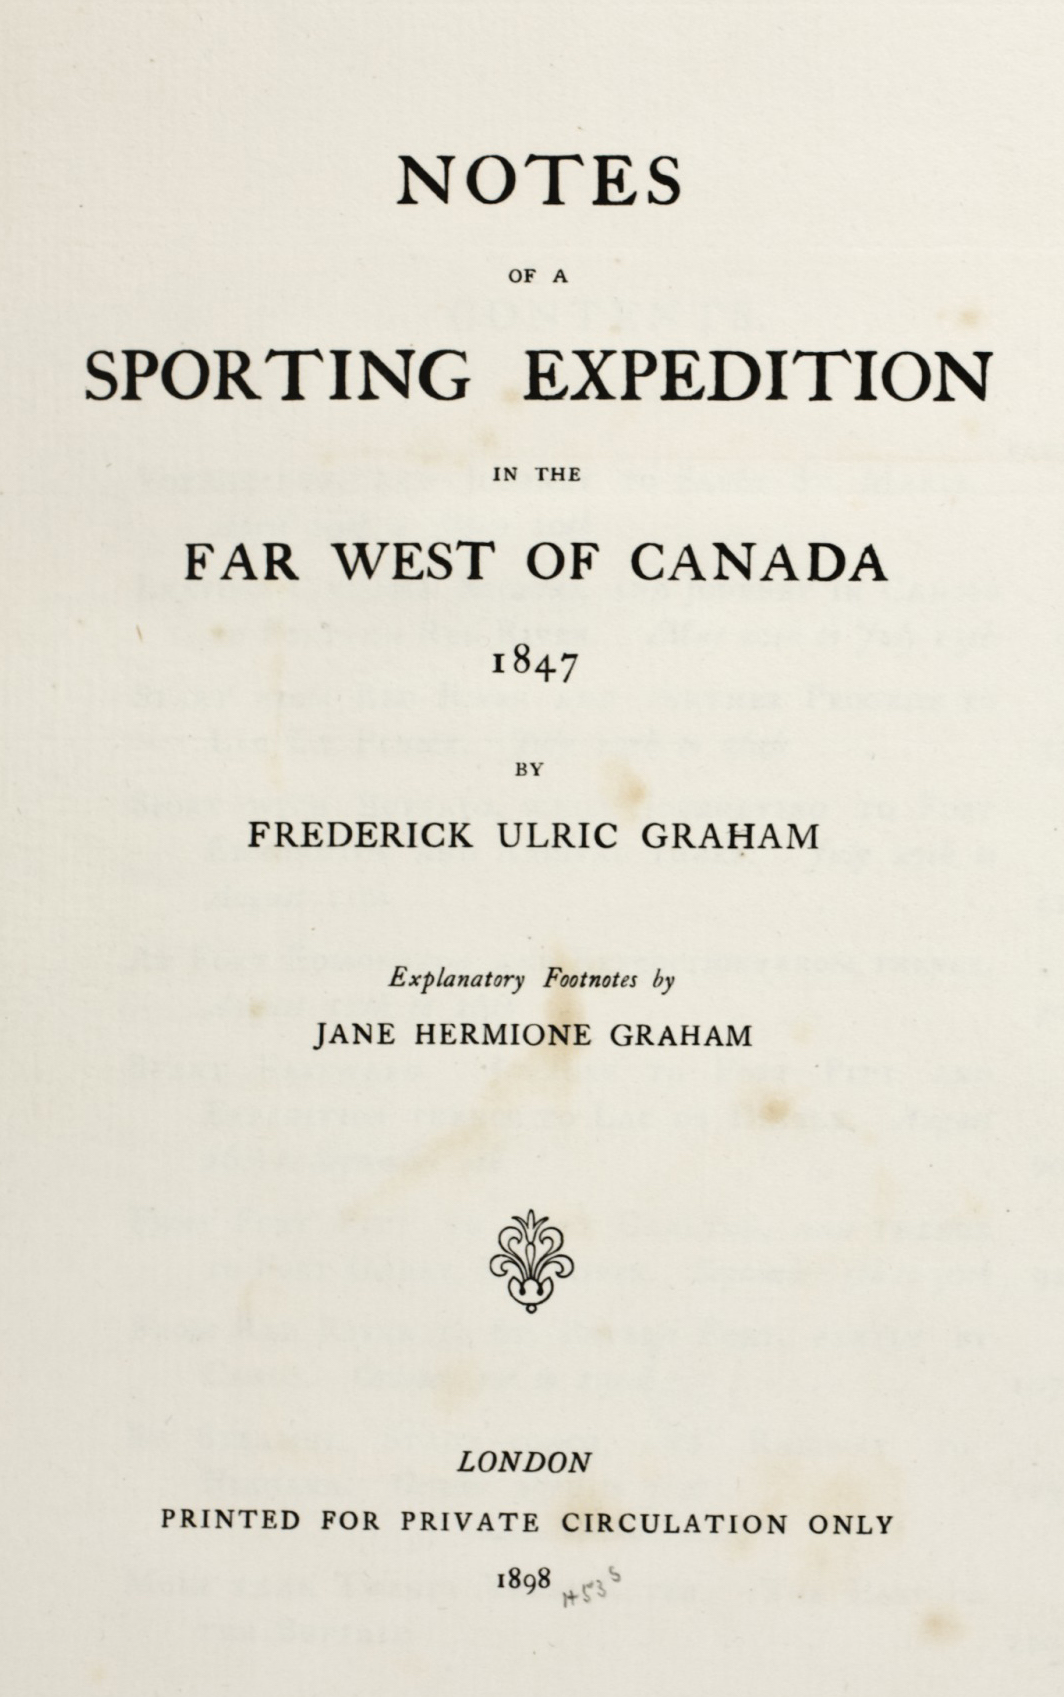 Hunting - Notes of a Sporting Expedition in the Far West of Canada